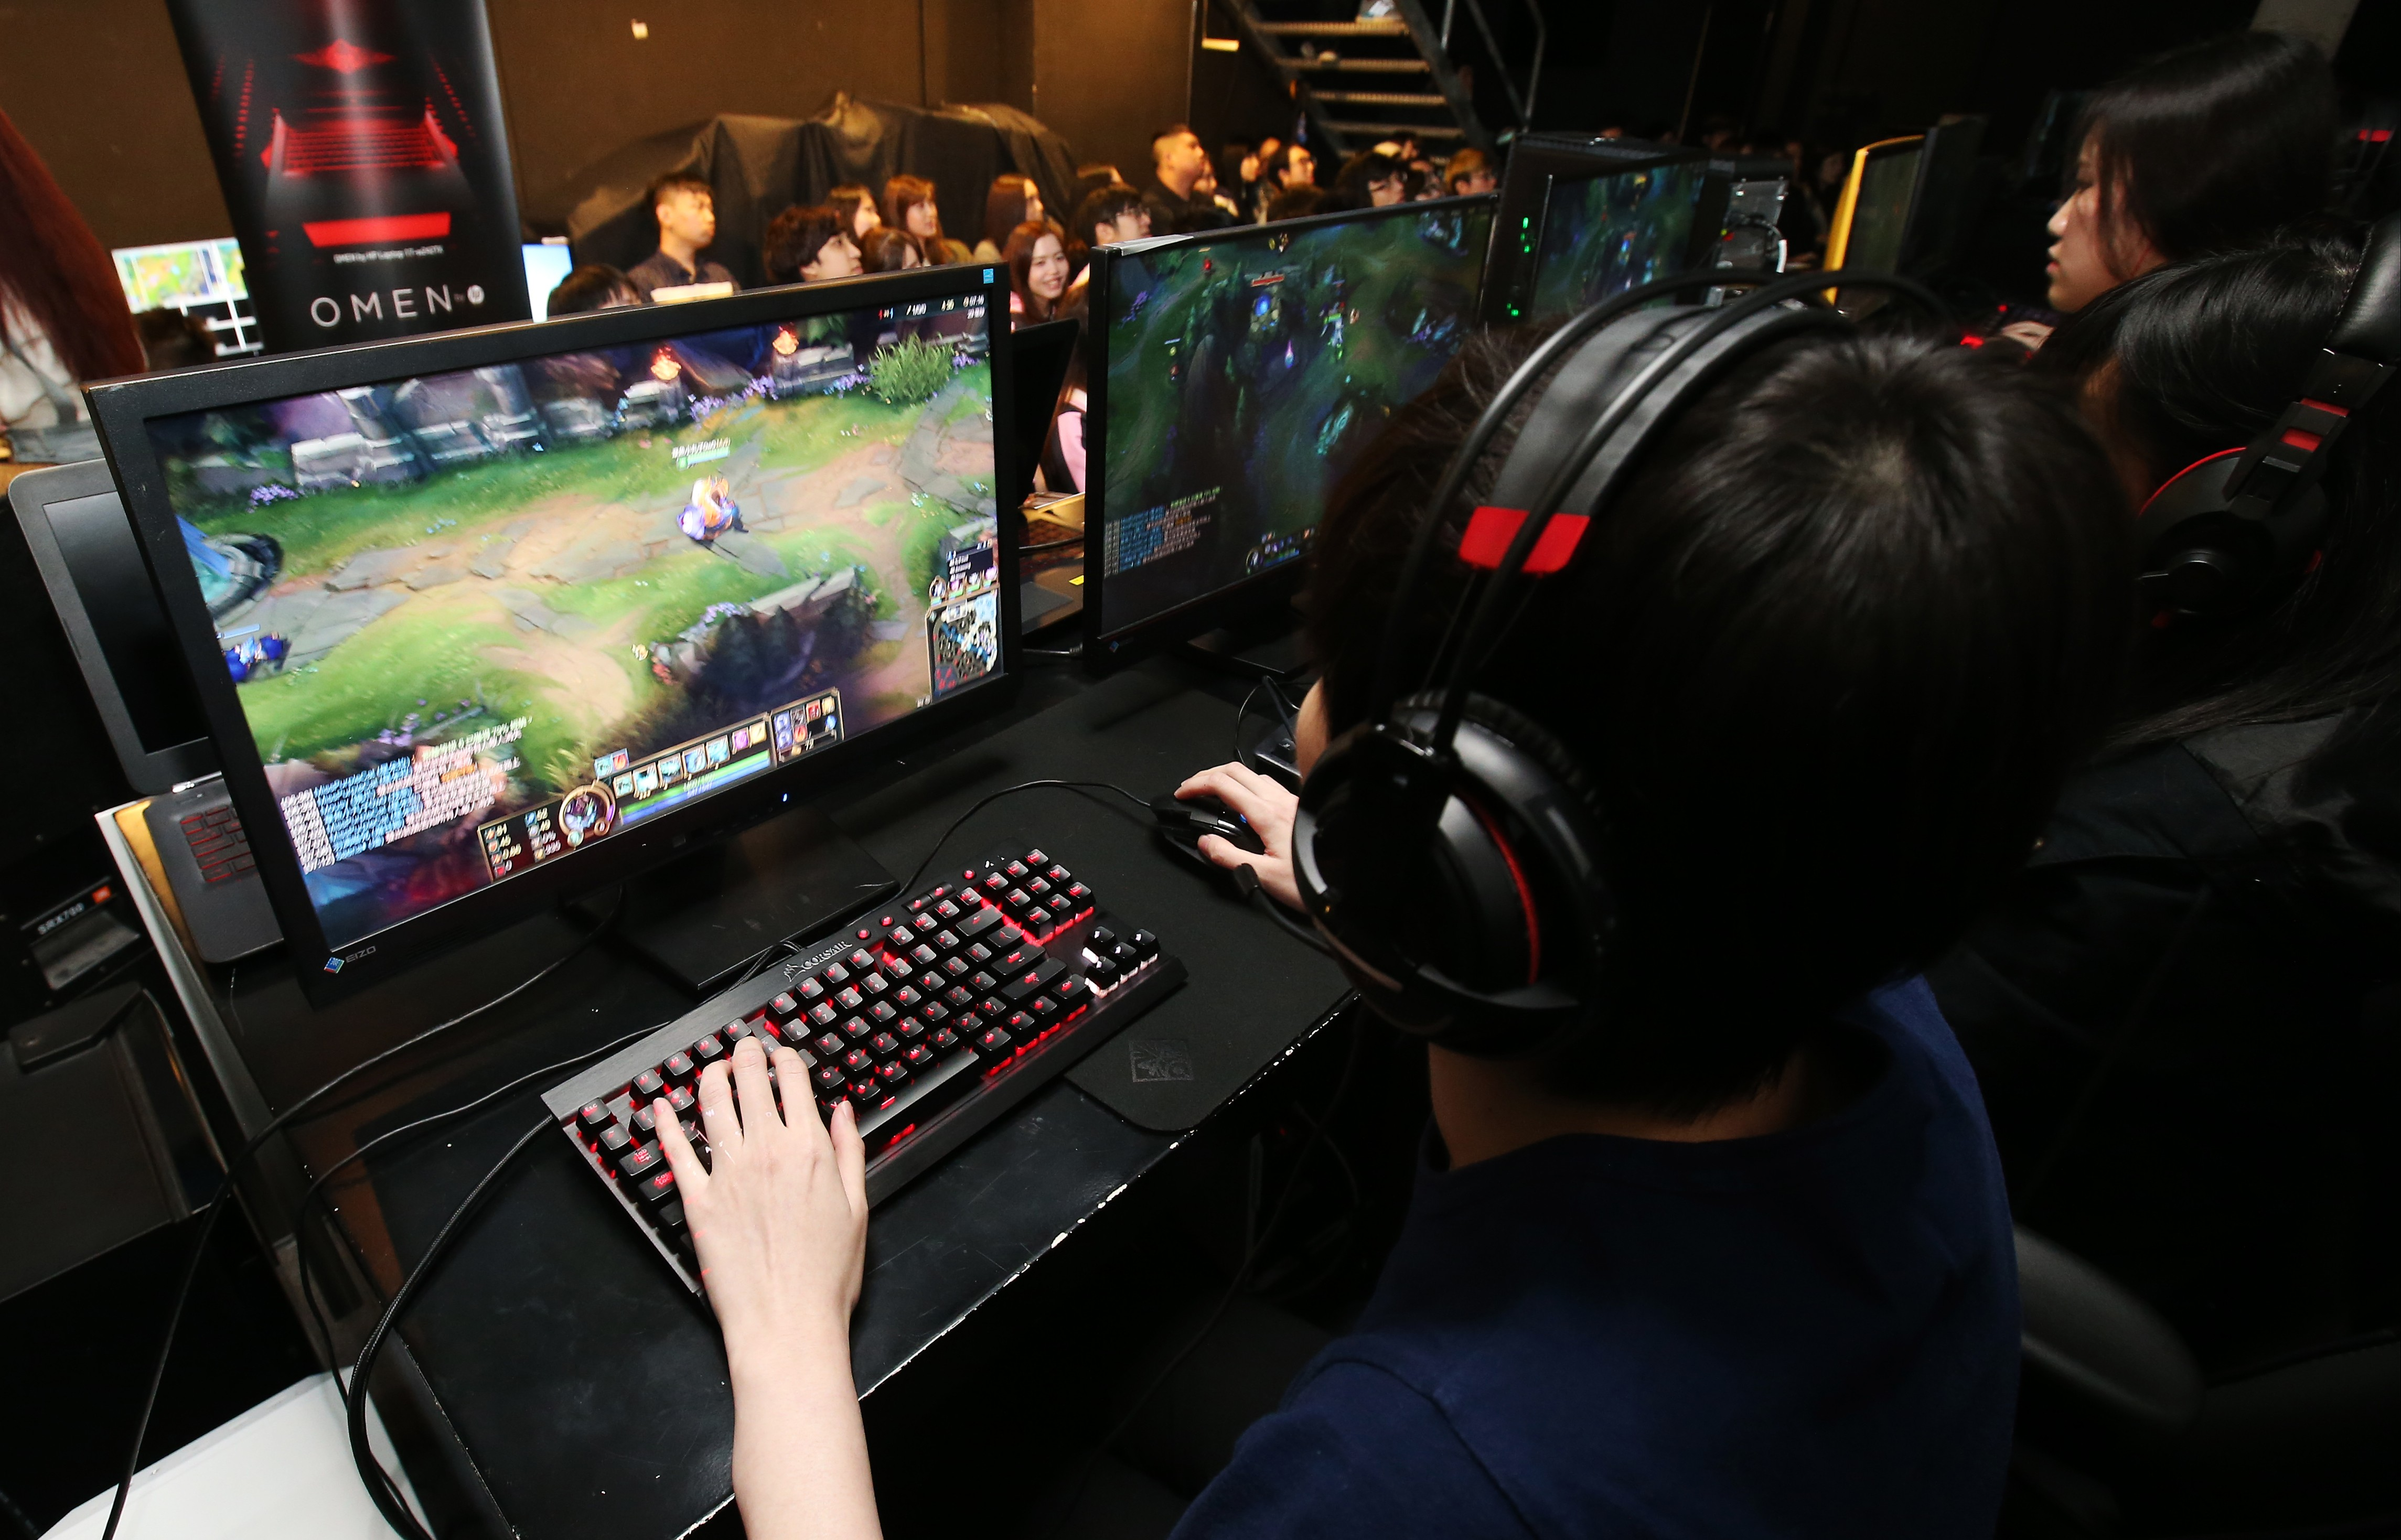 Are e-sports sports? Overwatch players sure act the part